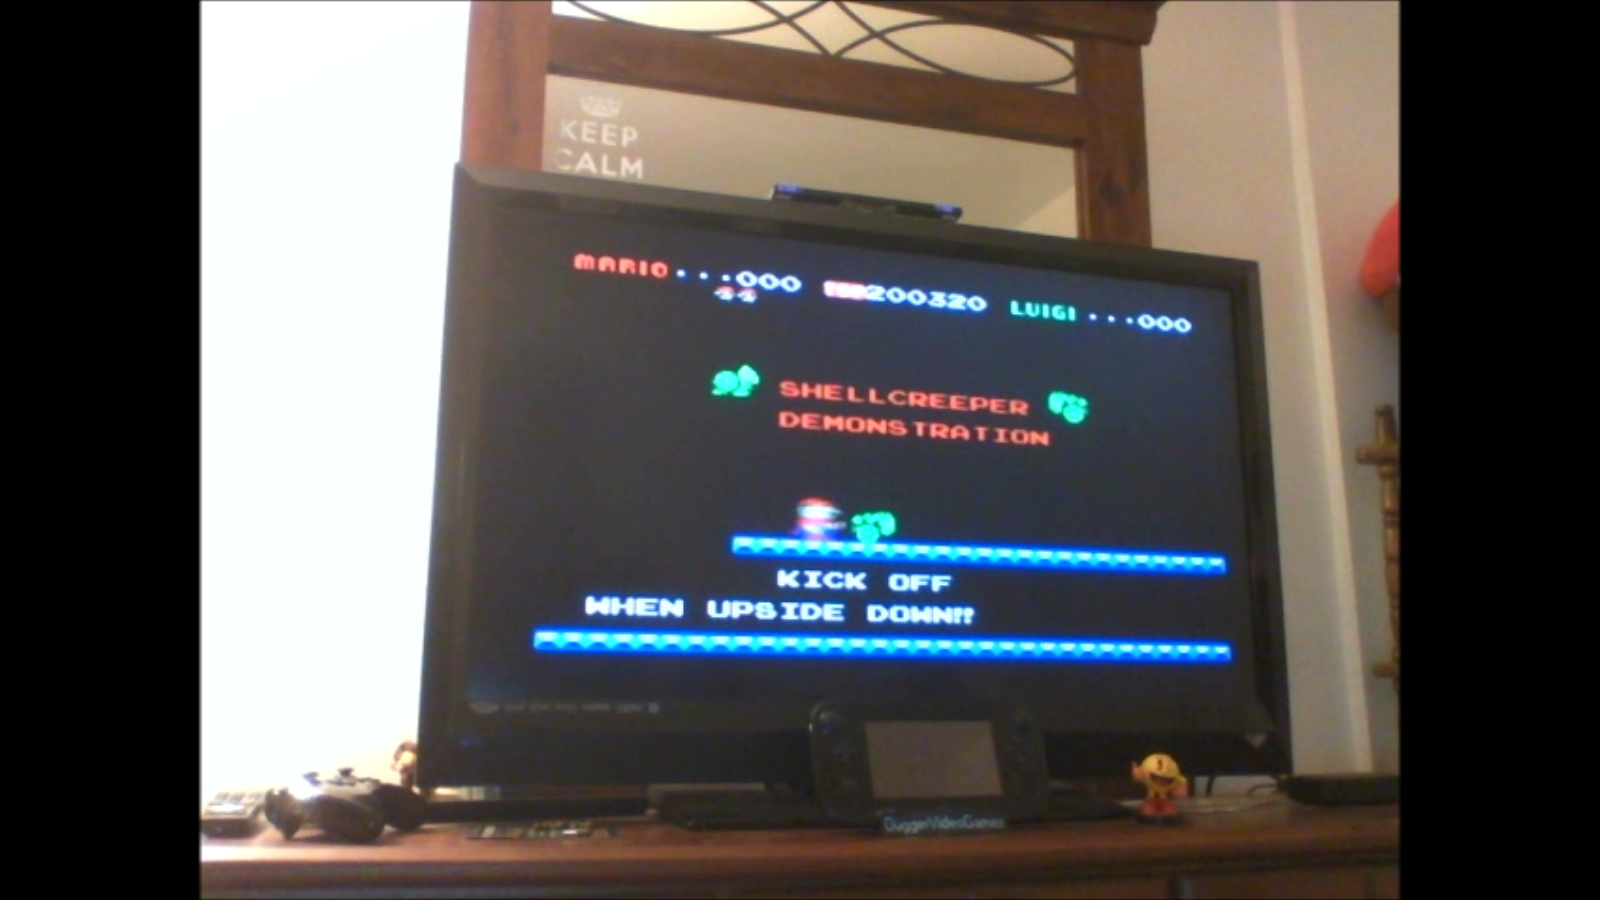 DuggerVideoGames: Mario Bros (Colecovision Emulated) 200,320 points on 2016-11-10 16:12:30